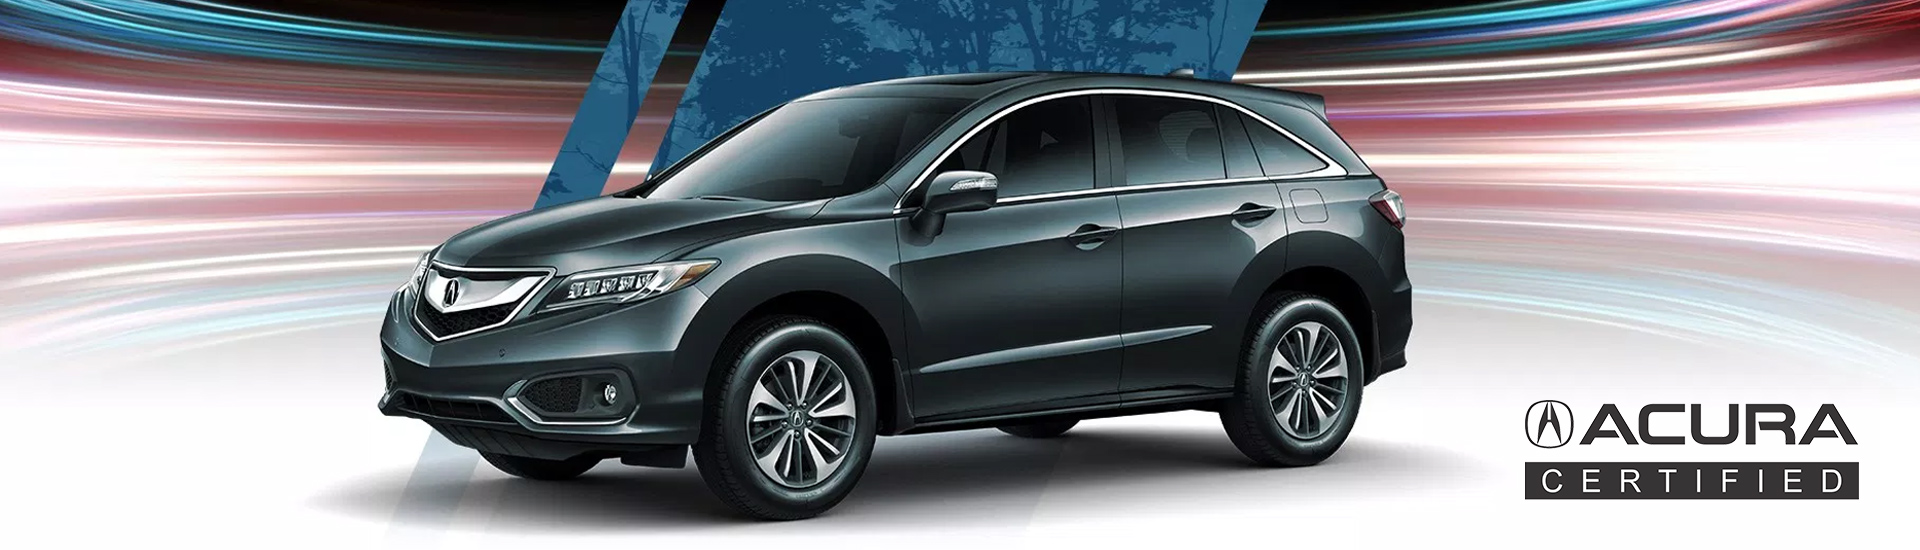 Acura Certified Pre Owned >> Explore Certified Pre Owned Acura Models In Canada Acura